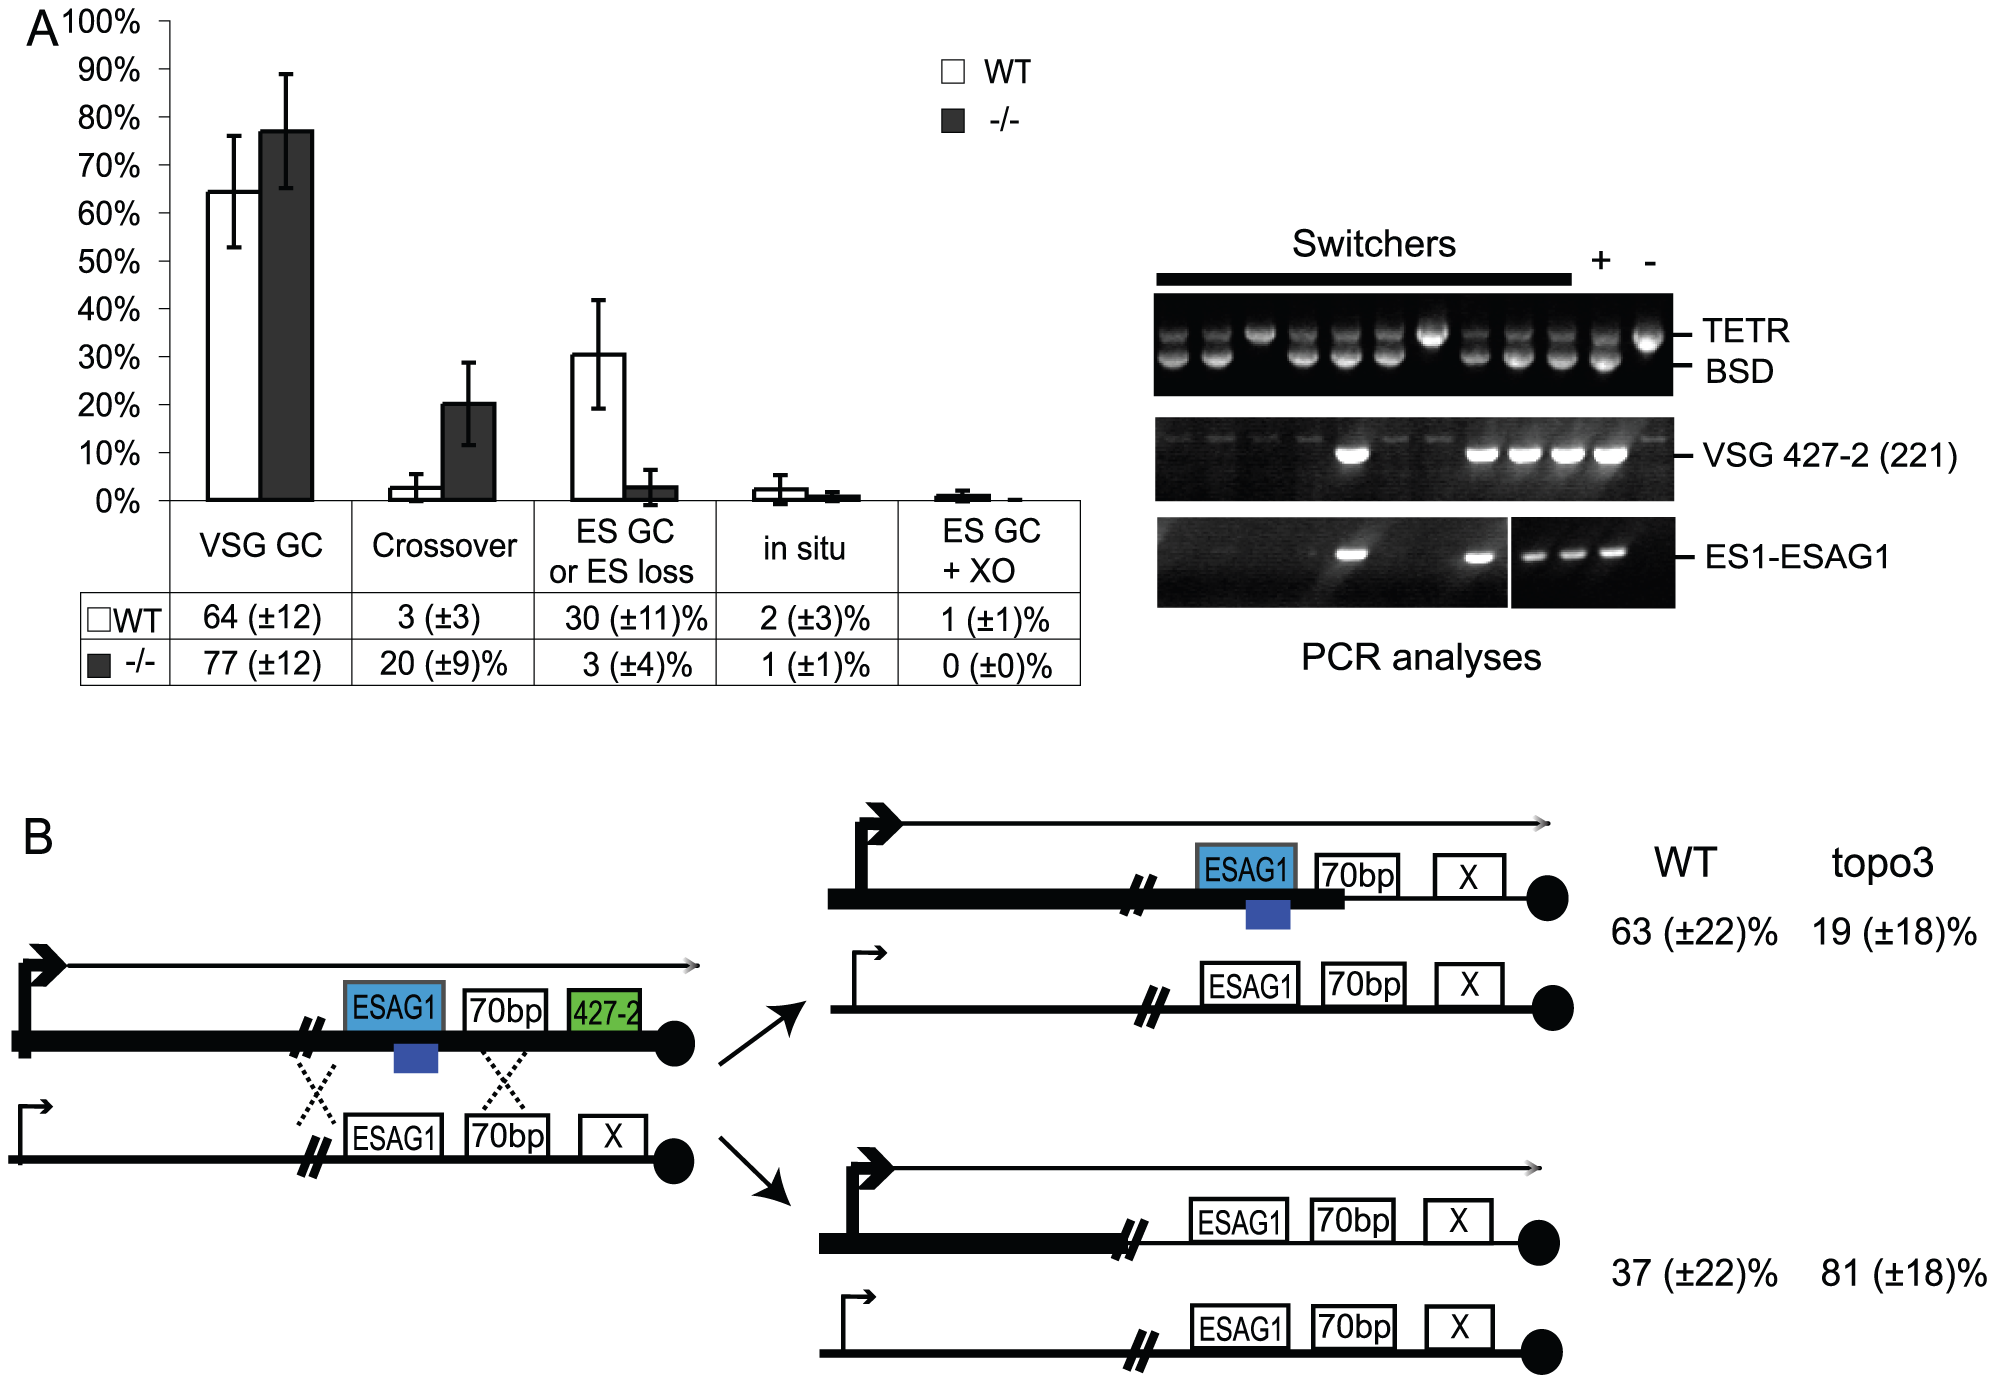 Analyses of switched variants.